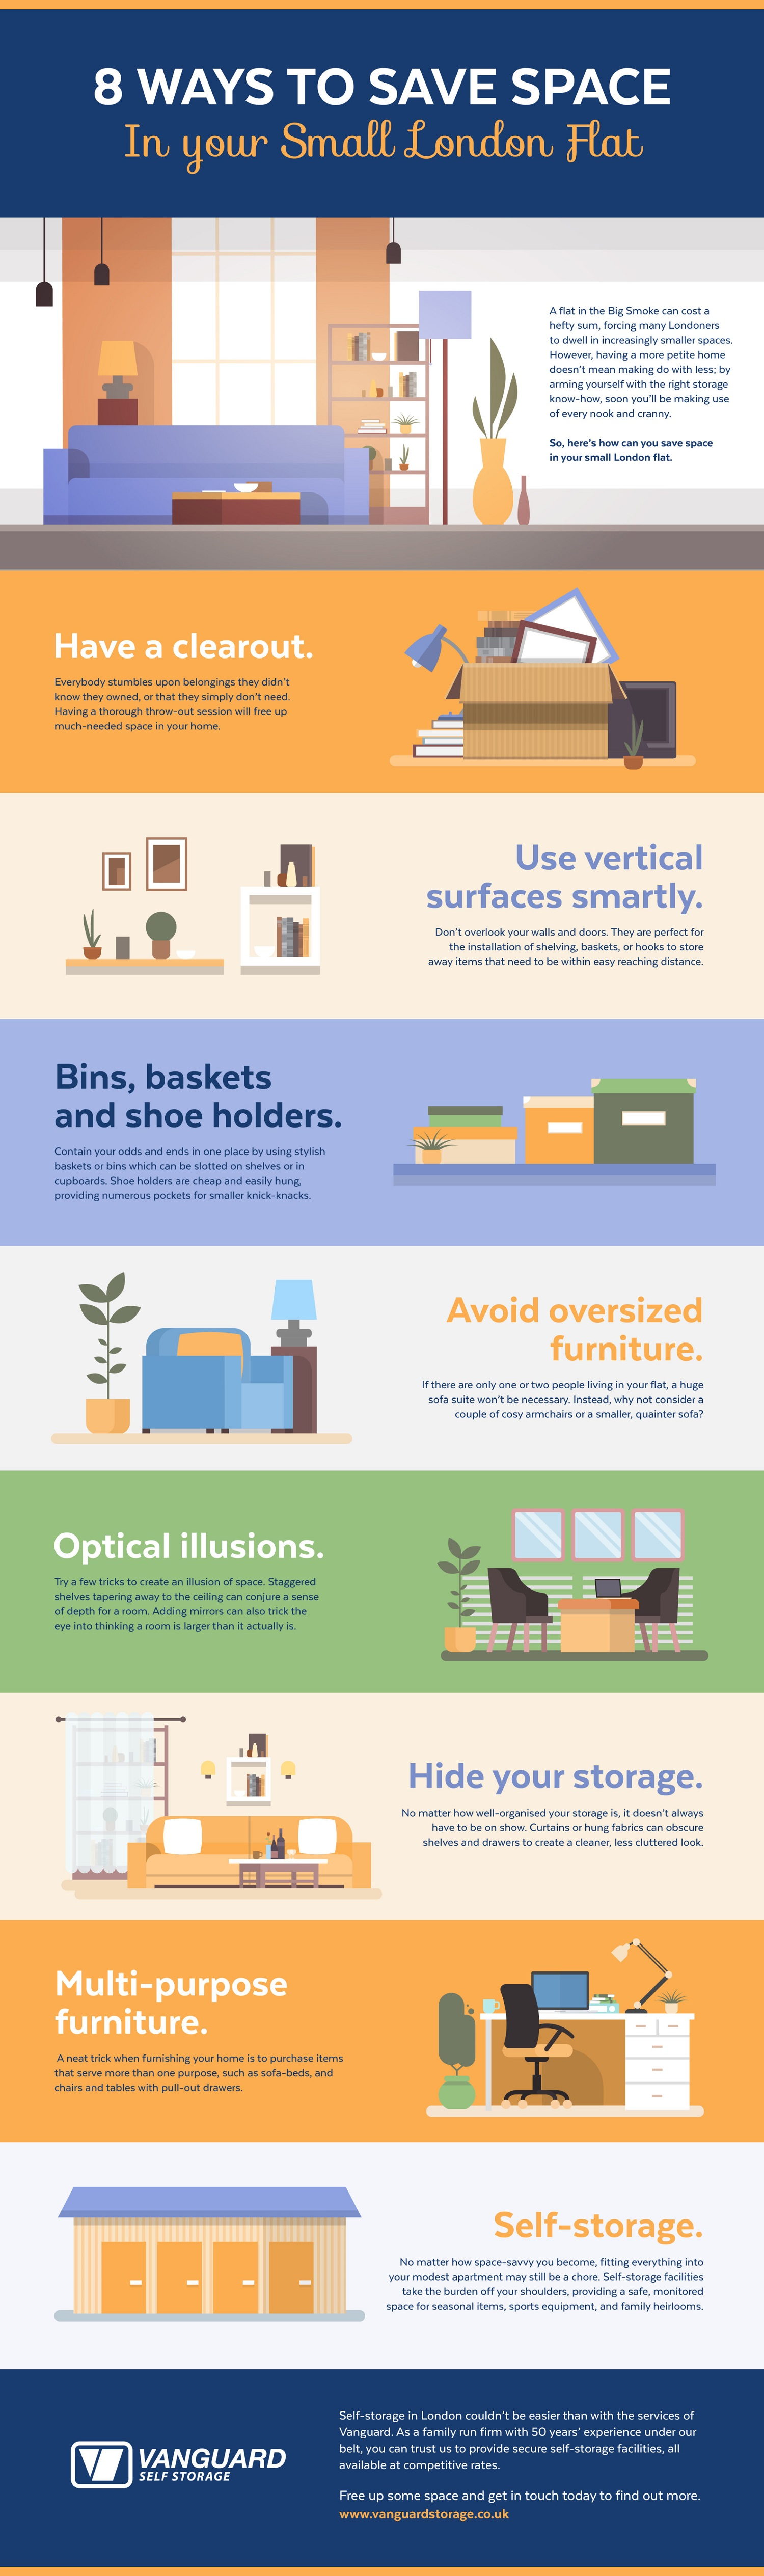 save space in your London flat infographic